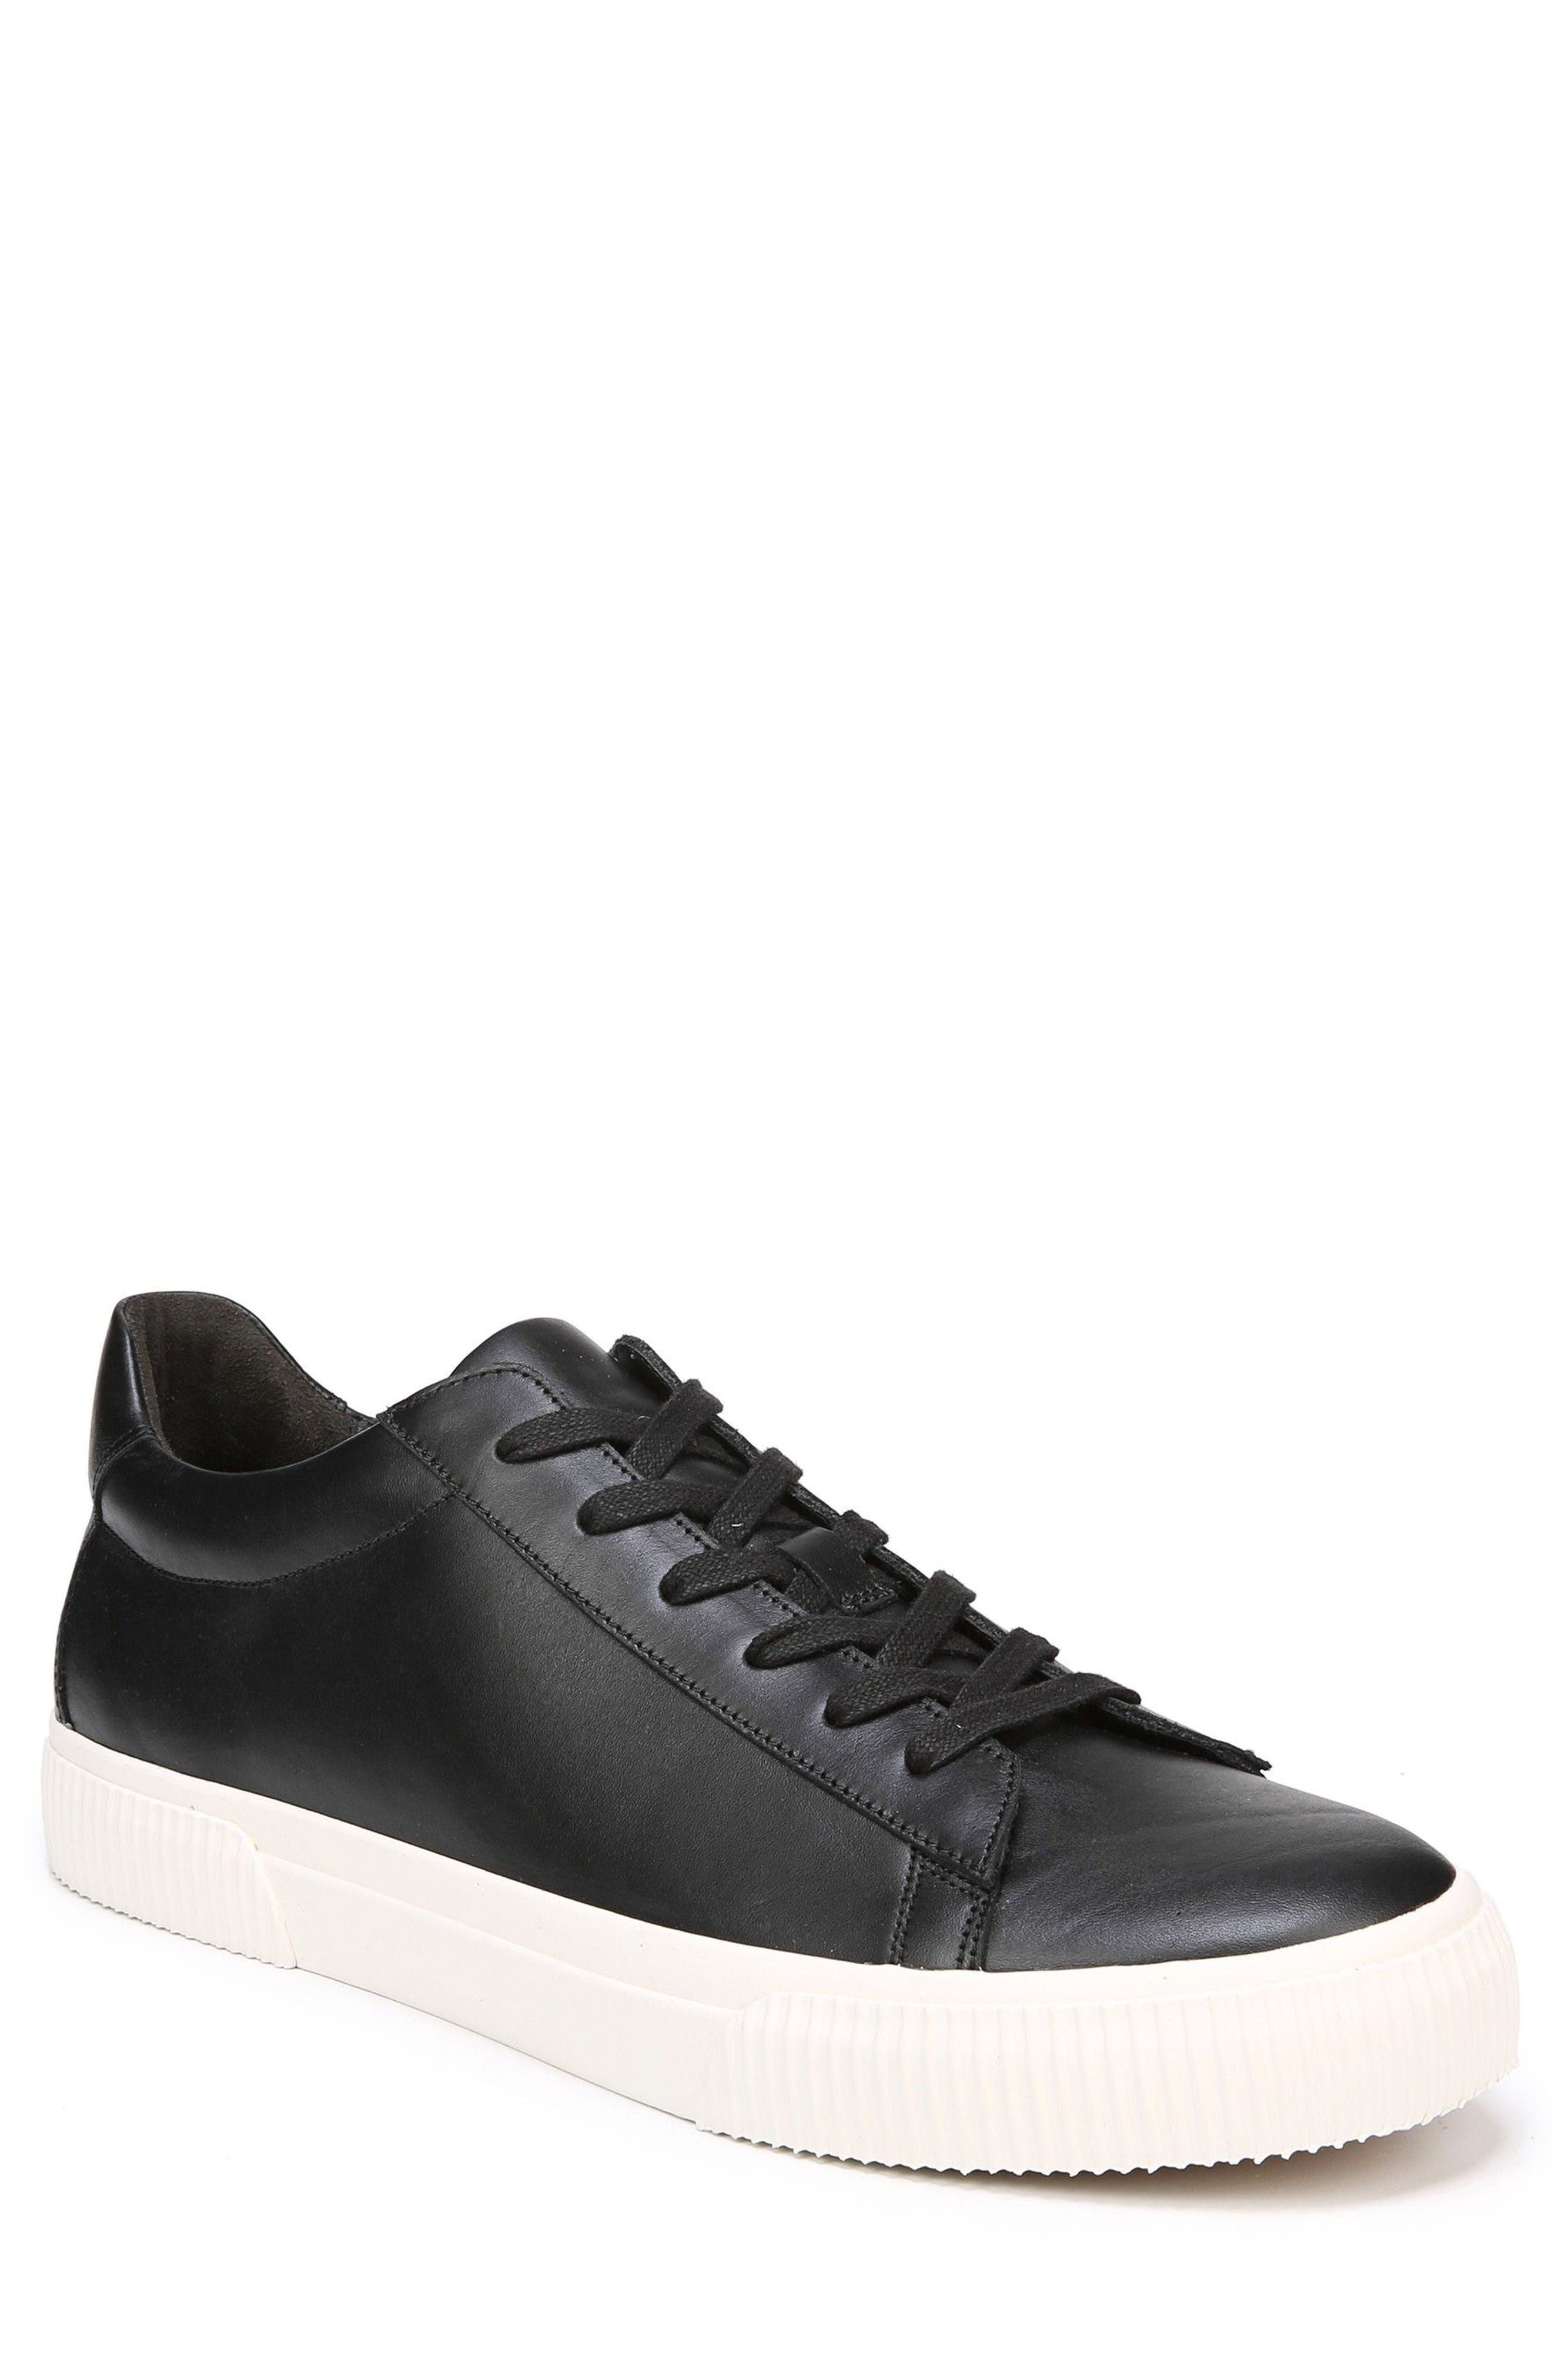 Kurtis Low Top Sneaker,                         Main,                         color, 001